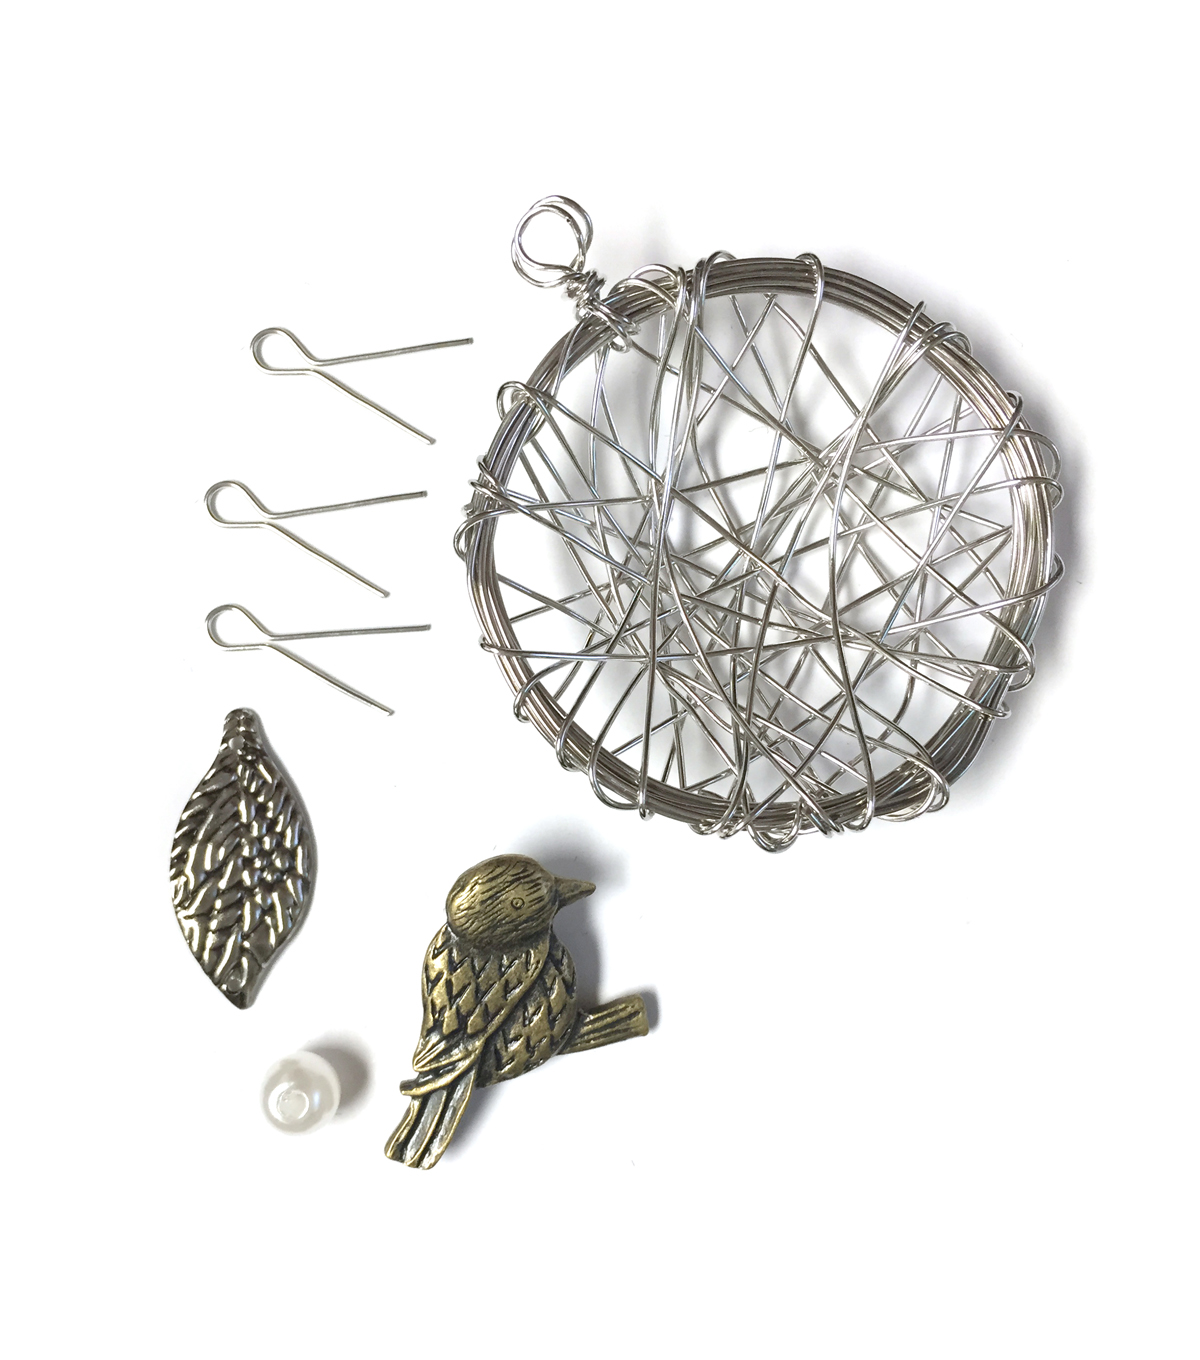 Blue Moon Beads Customizable Pendant Kit Birds Nest with Leaves & Eggs